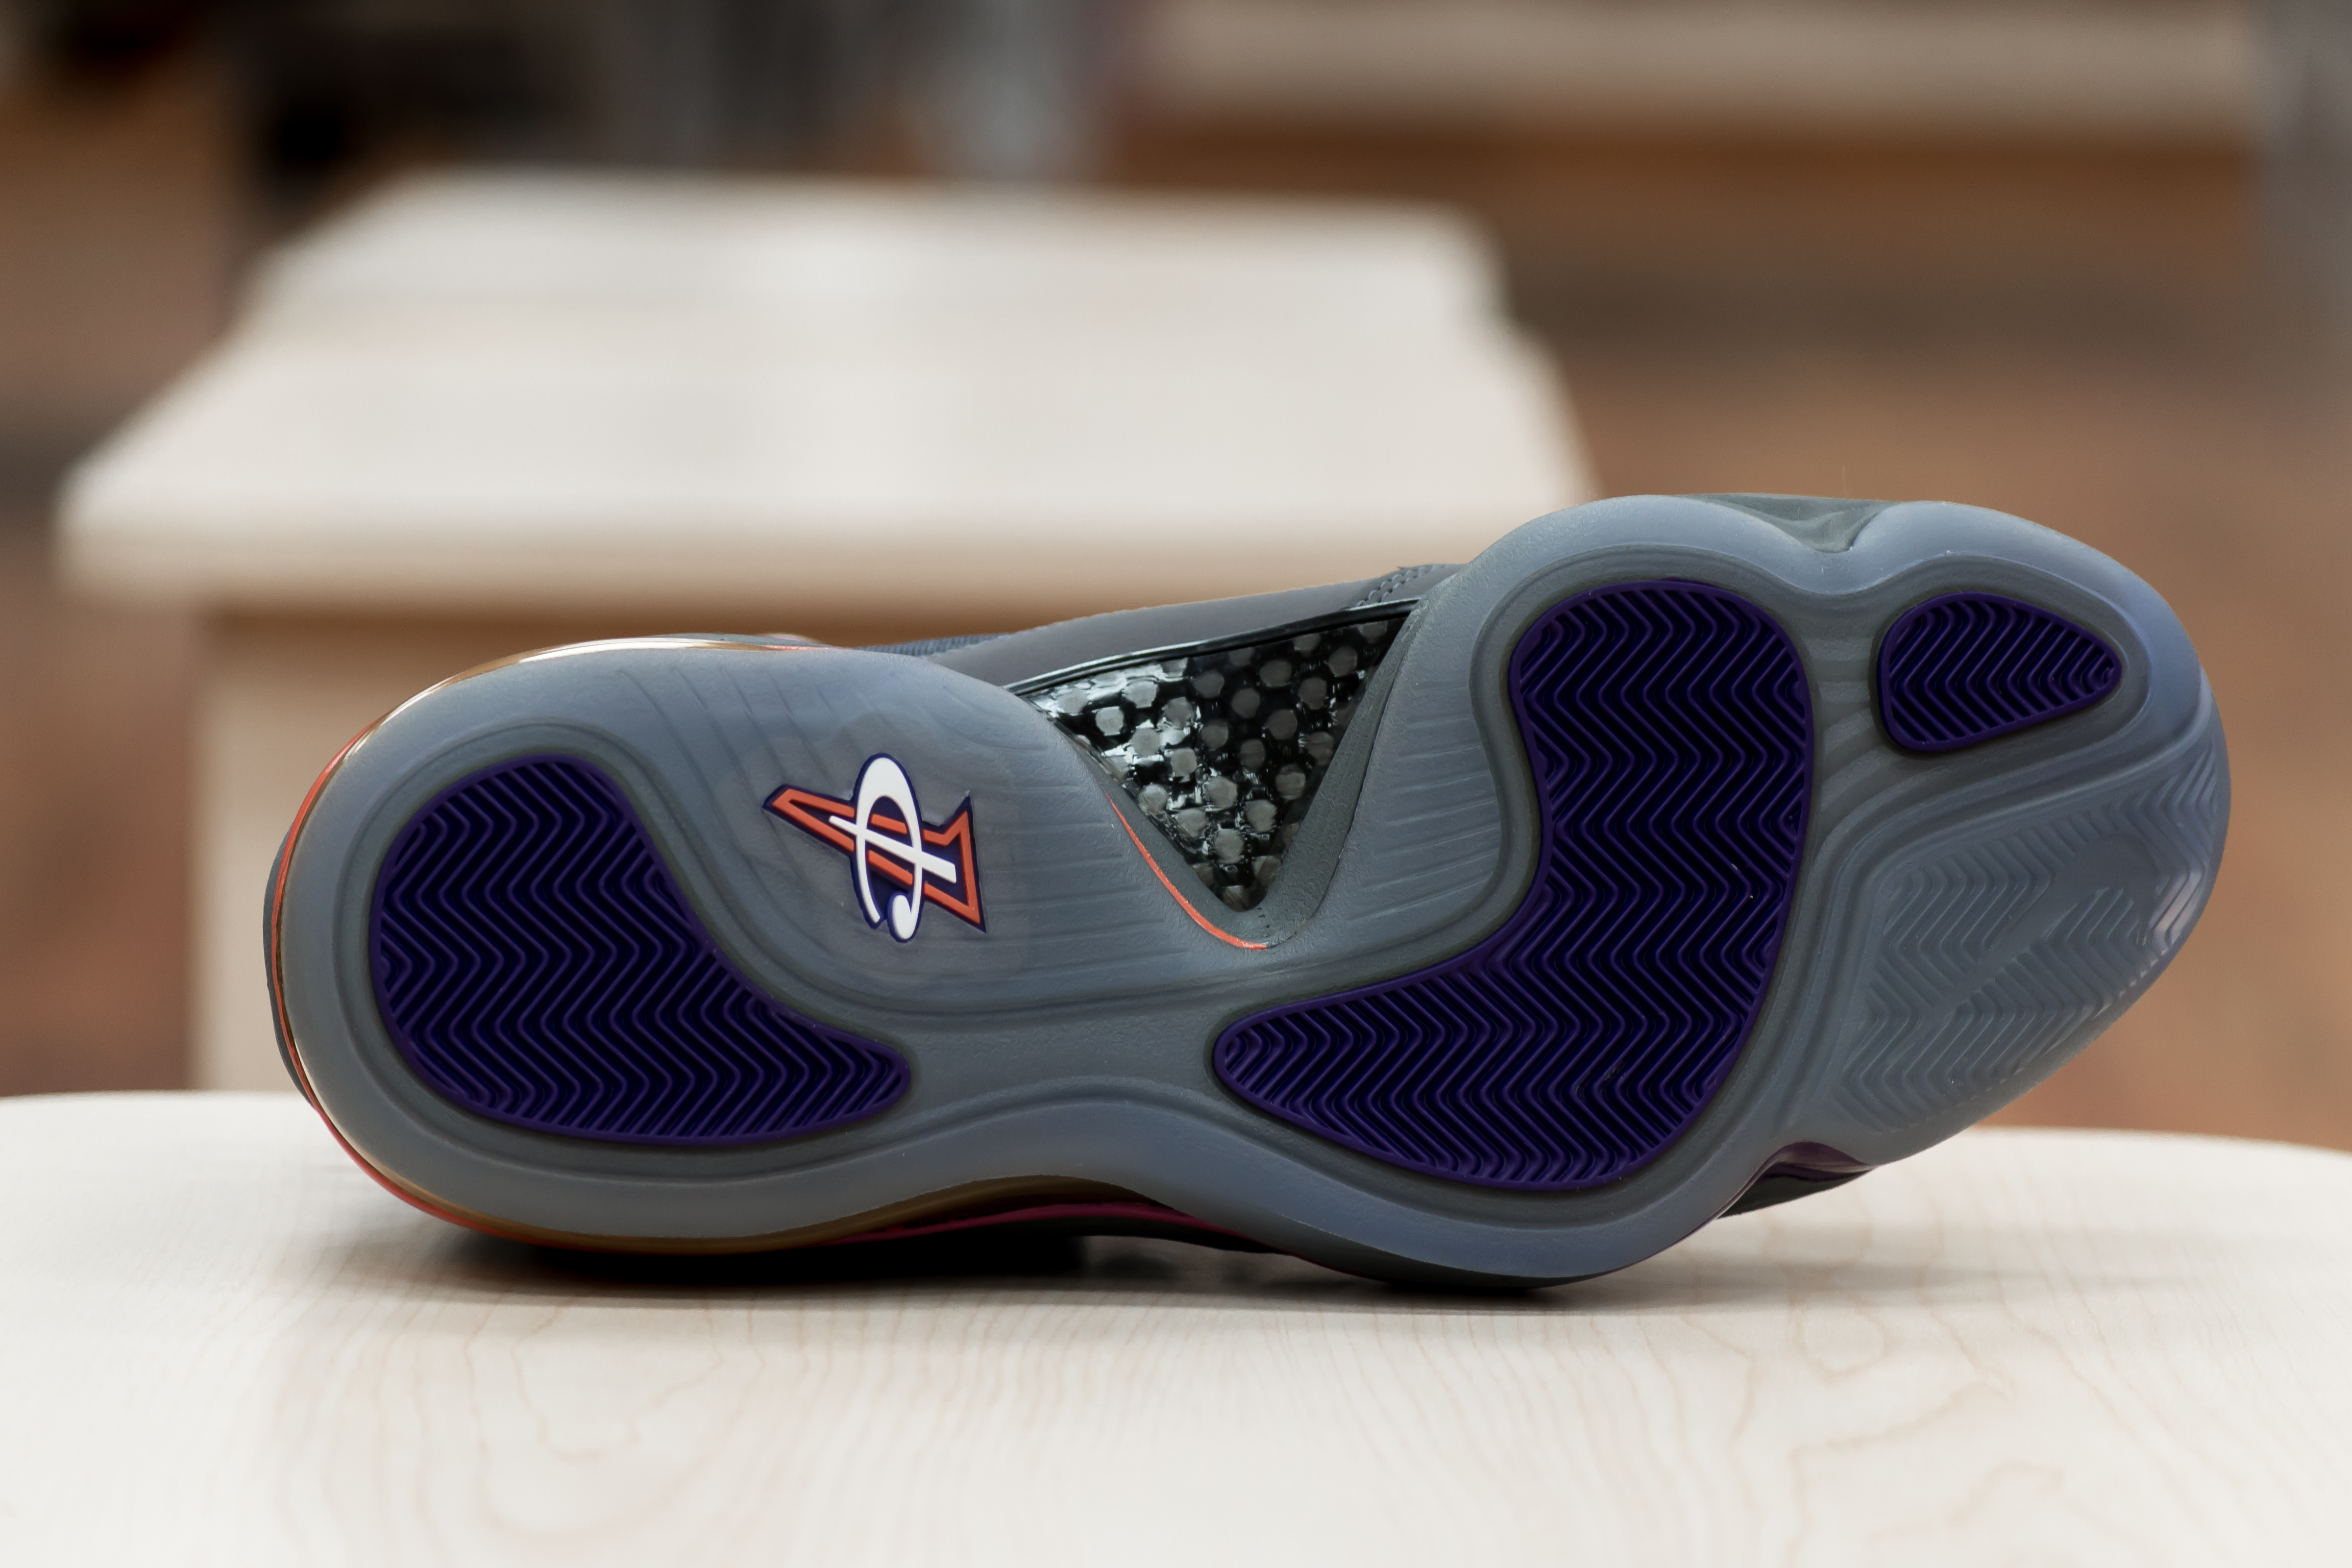 best sneakers f22fa 2e2f5 ... for the Phoenix Suns from 1999 to 2004, Penny Hardaway is set to see a Dark  Grey Black-Rave Pink-Court Purple colorway of his signature Nike Air Penny V  ...